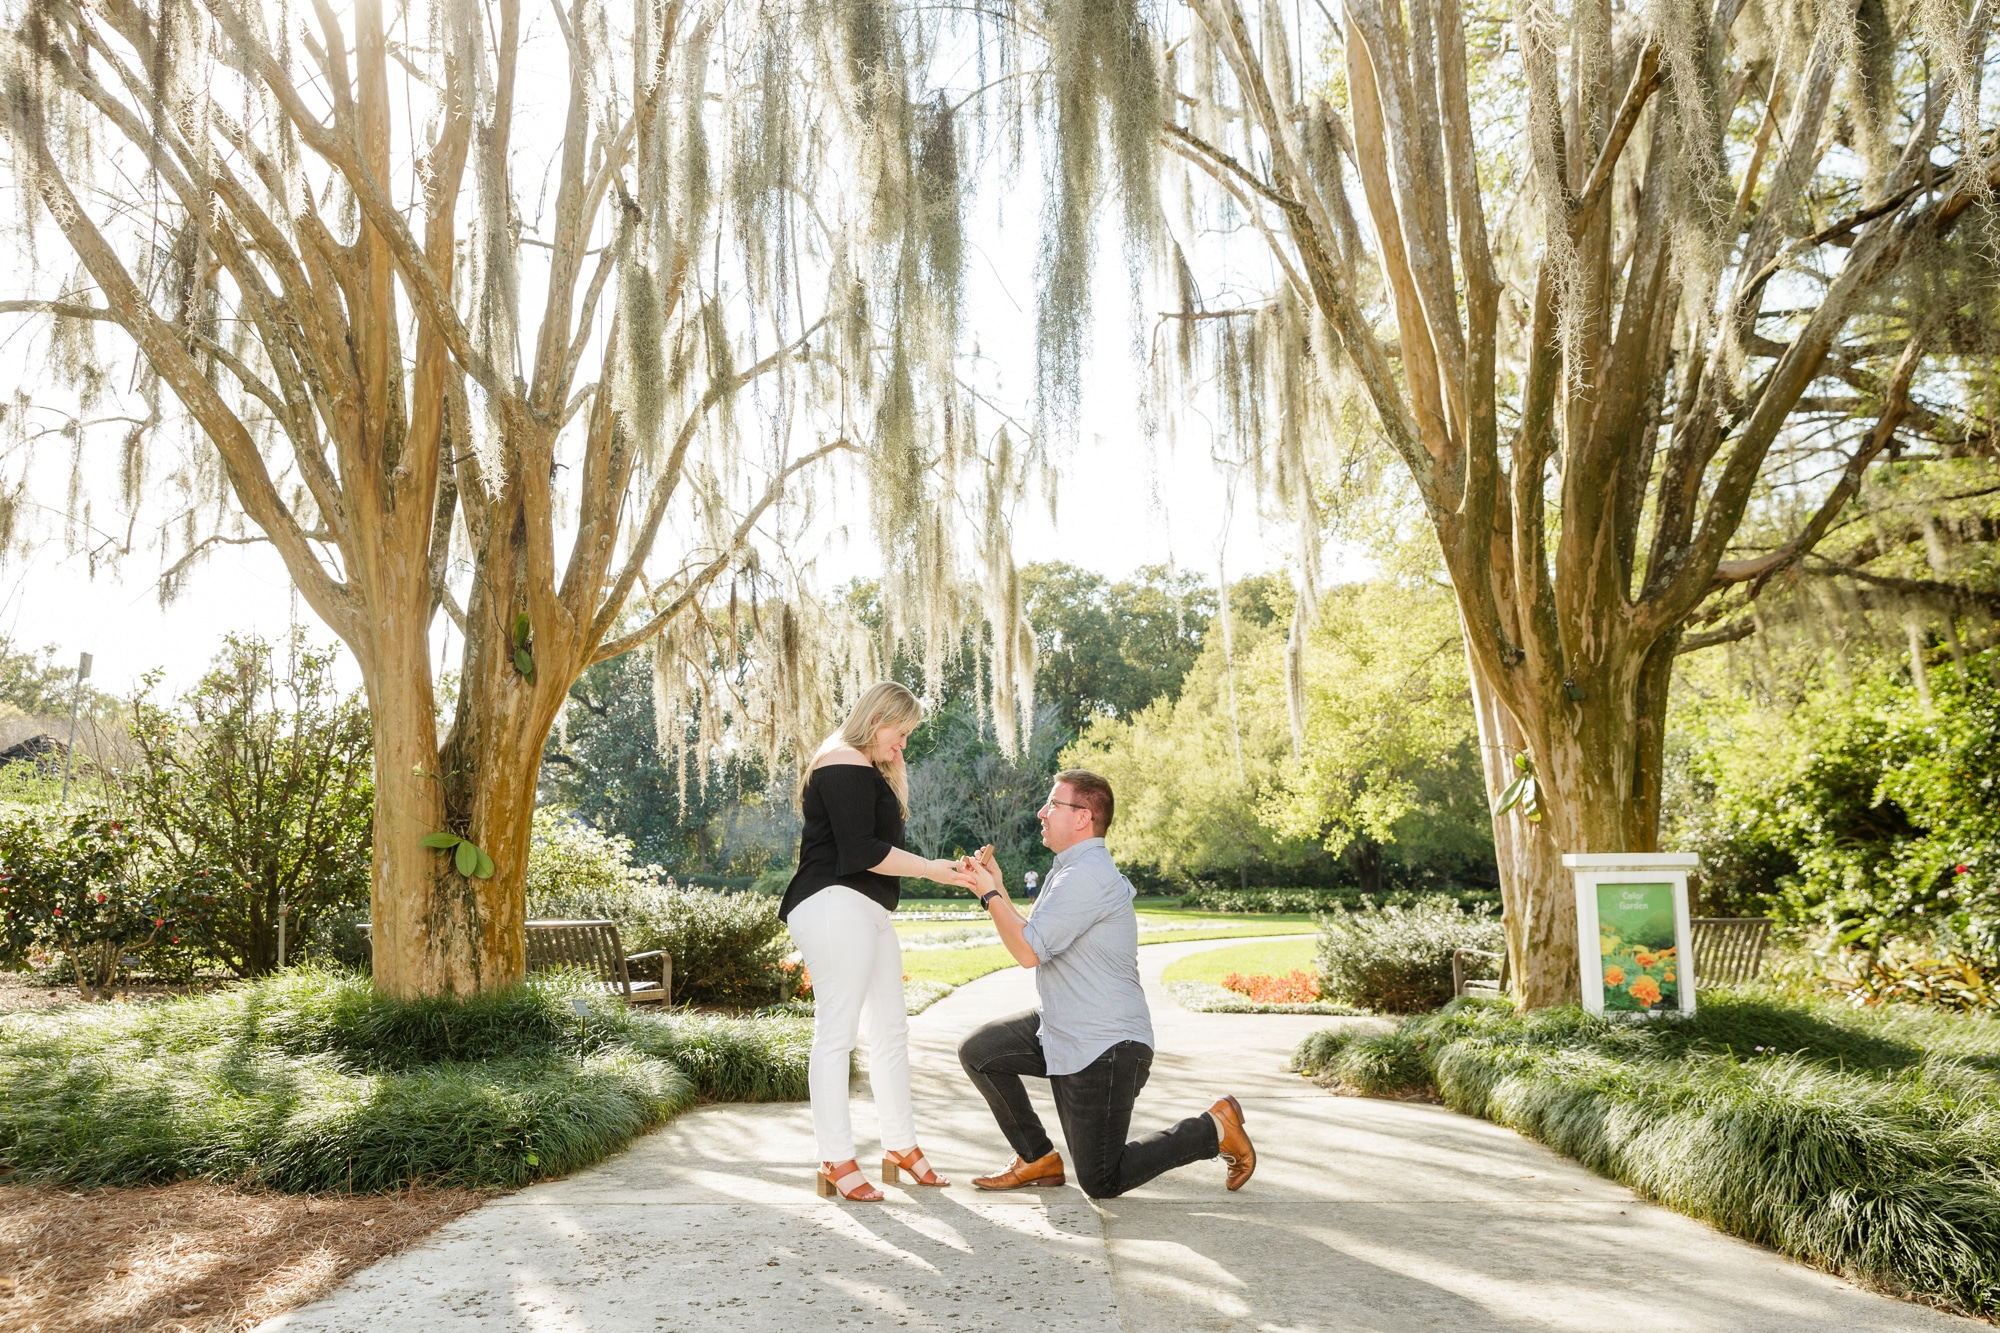 outside on the sidewalk in between two big tress with spanish moss hanging from them man gets on one knee in front of woman and proposes marriage